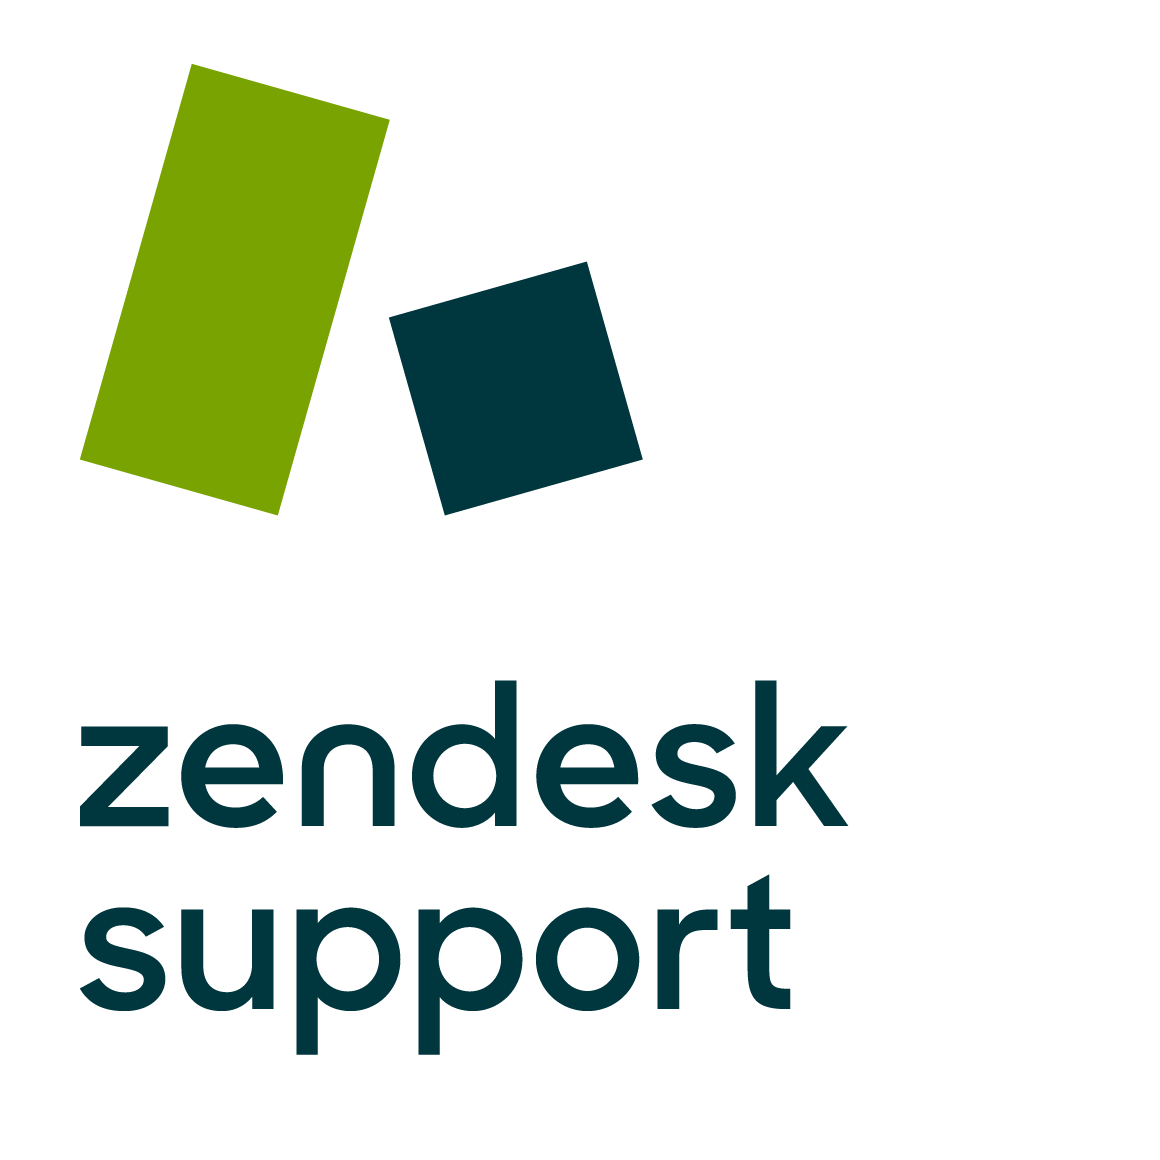 support_zendesk vertical.png